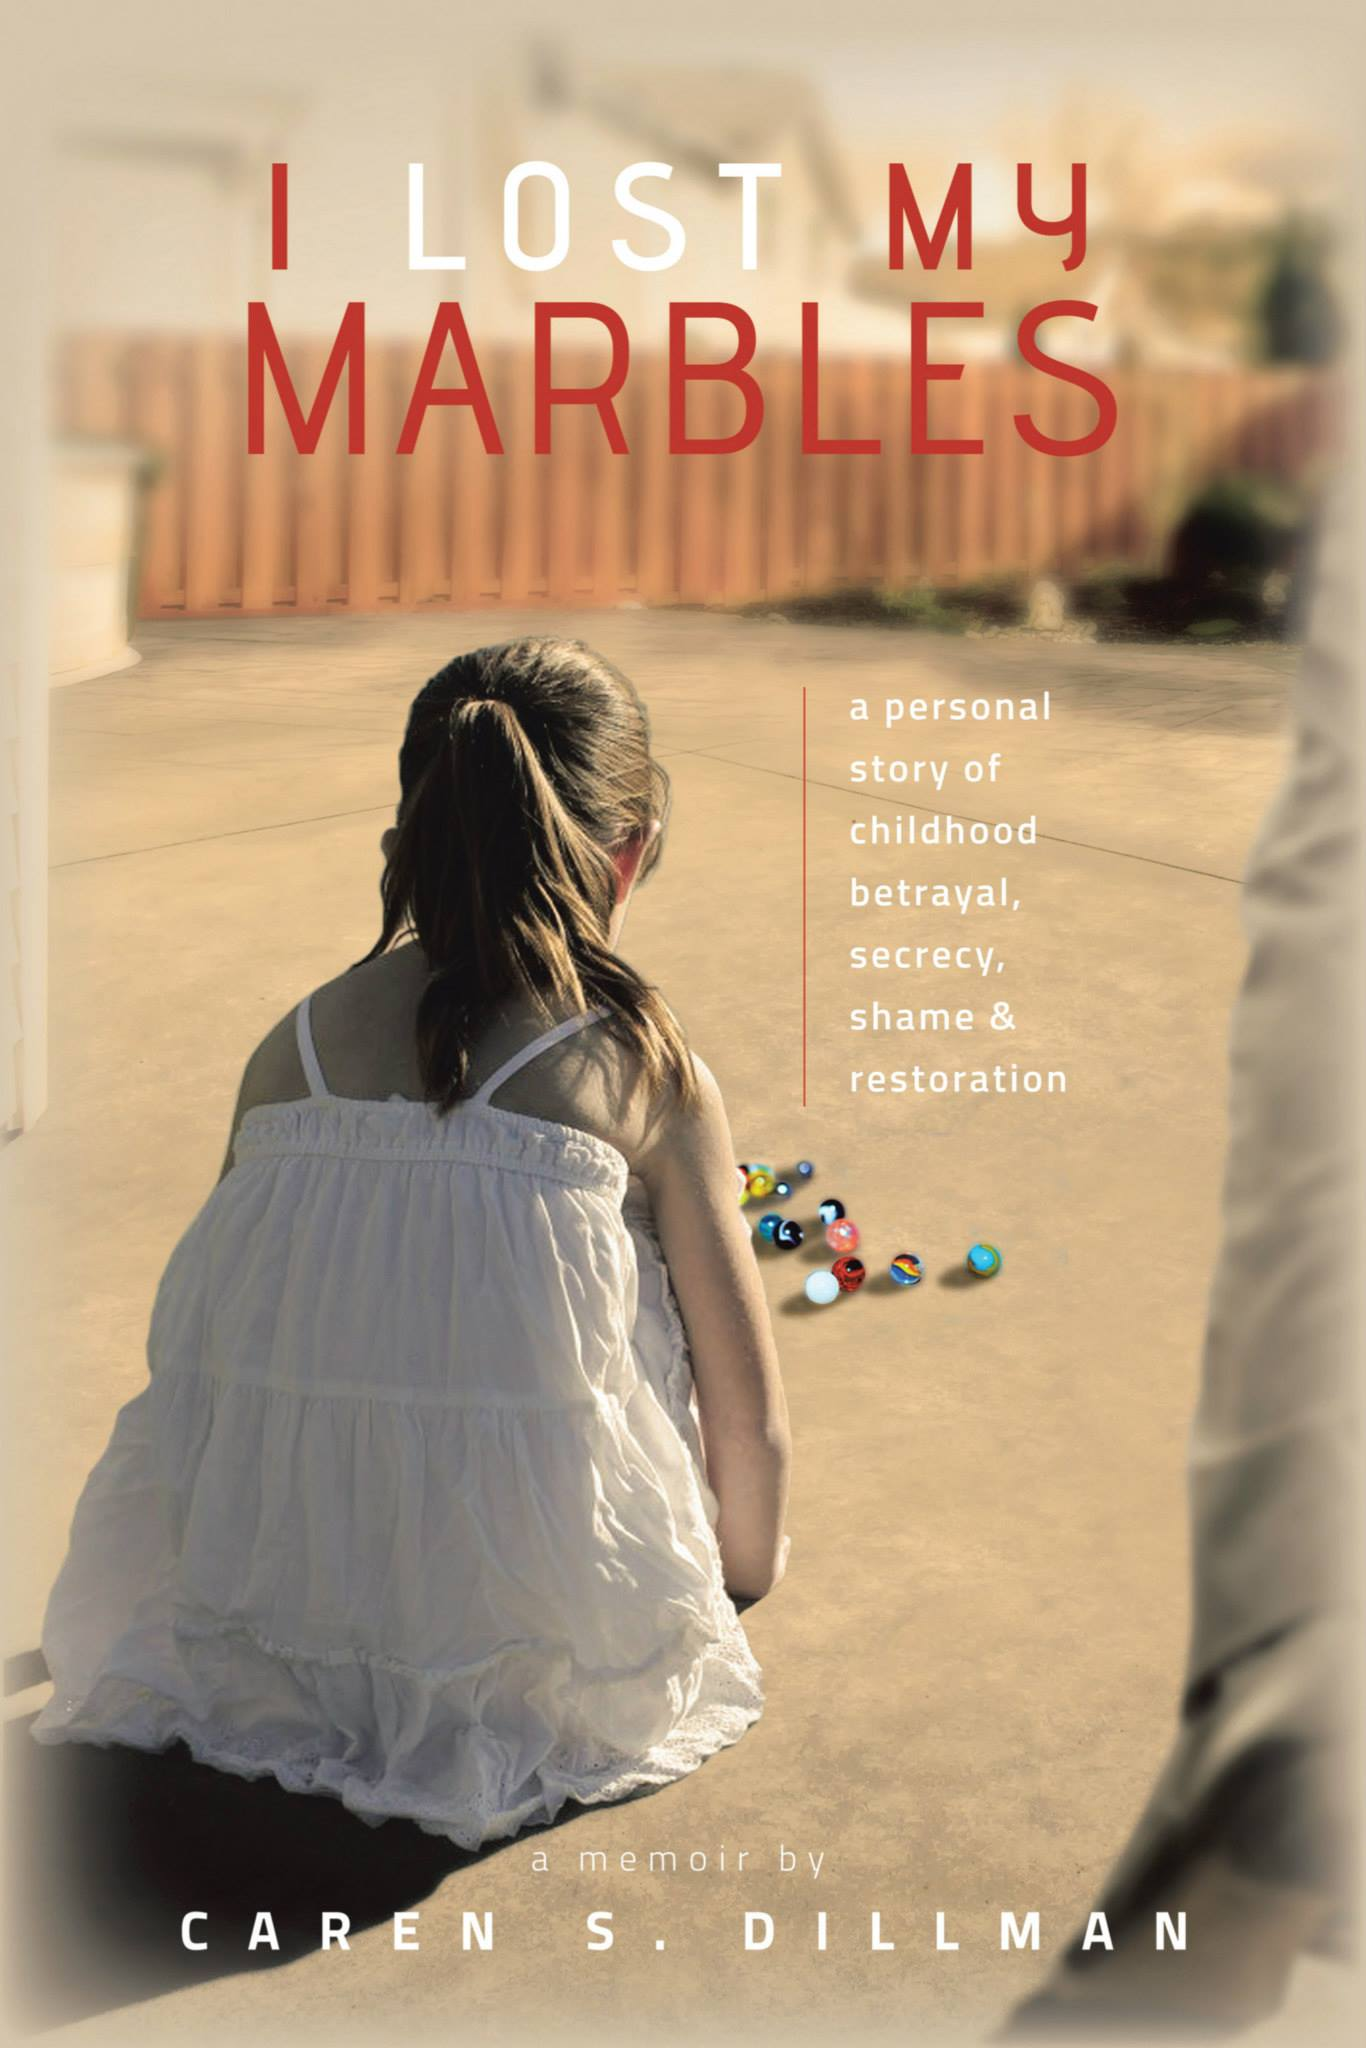 Lost my marbles! photo